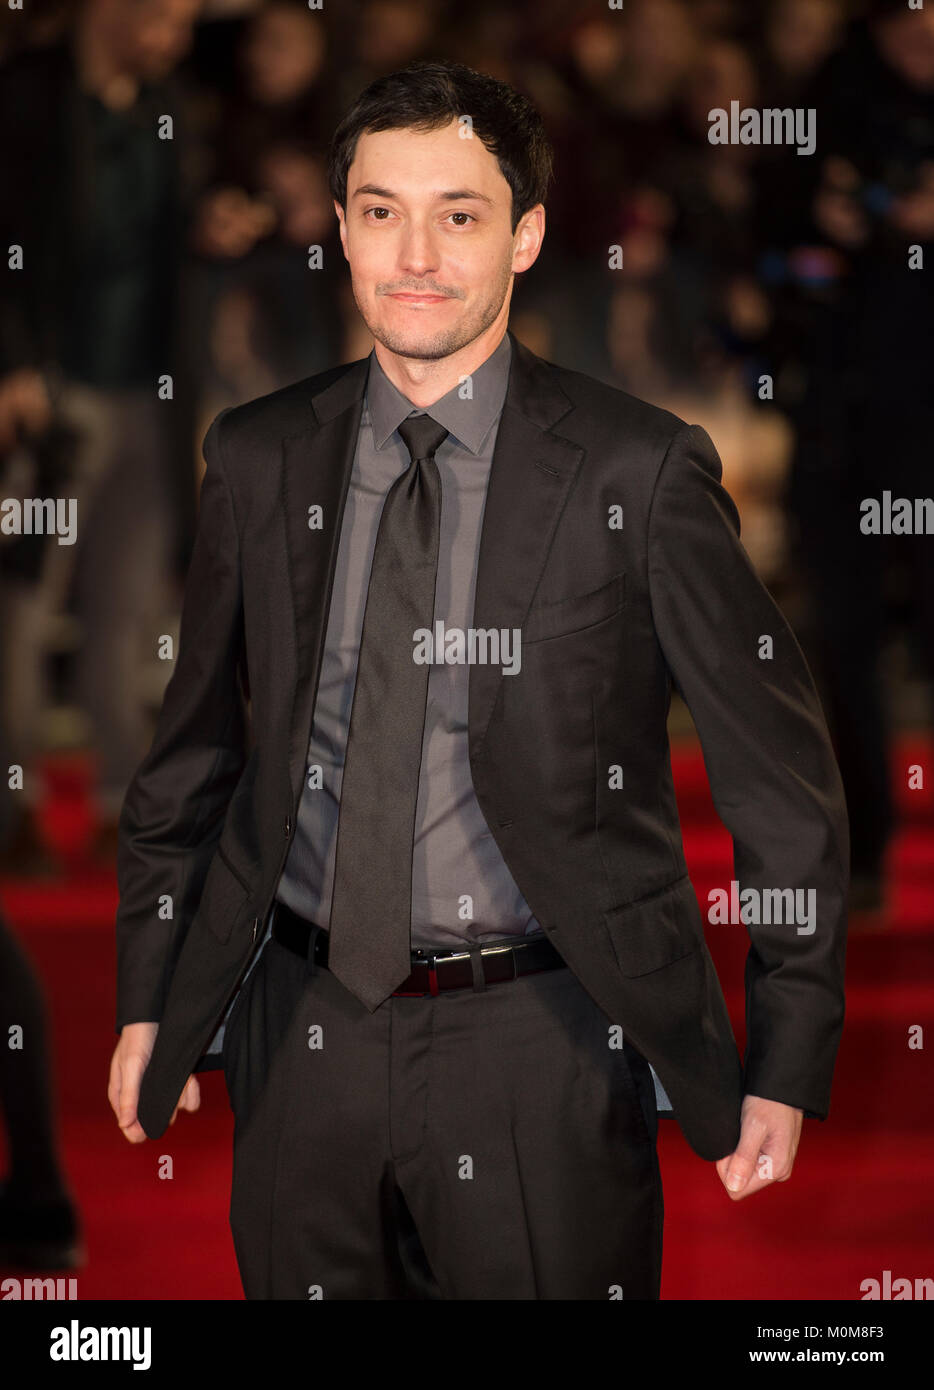 London, UK. 22nd Jan, 2018. Wes Ball attends the 'Maze Runner: The Death Cure' film premiere, London, UK - Stock Image